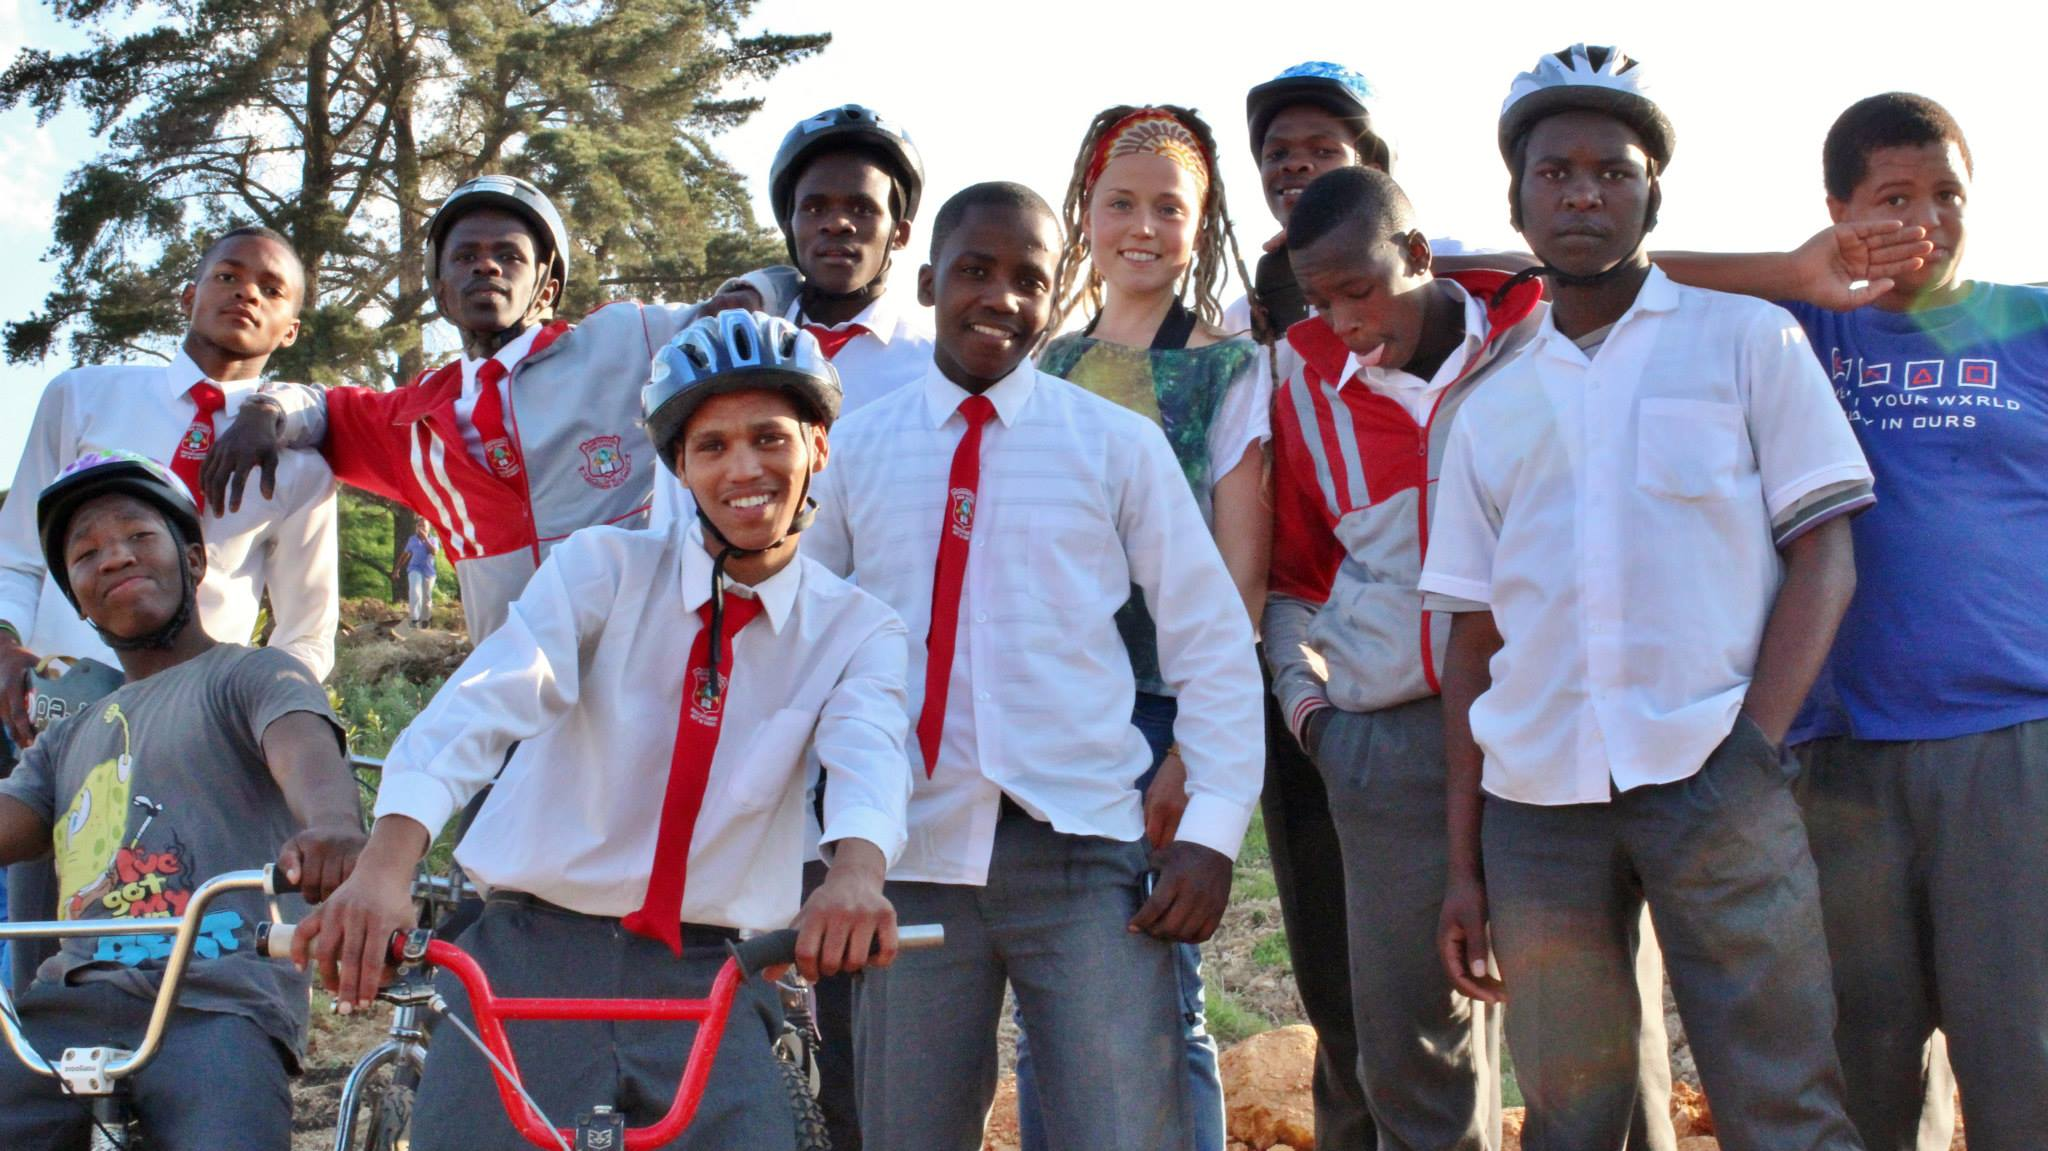 Brenna with some of the youth she's been working with inFisantekraal. Photo by Carrie Buckmaster